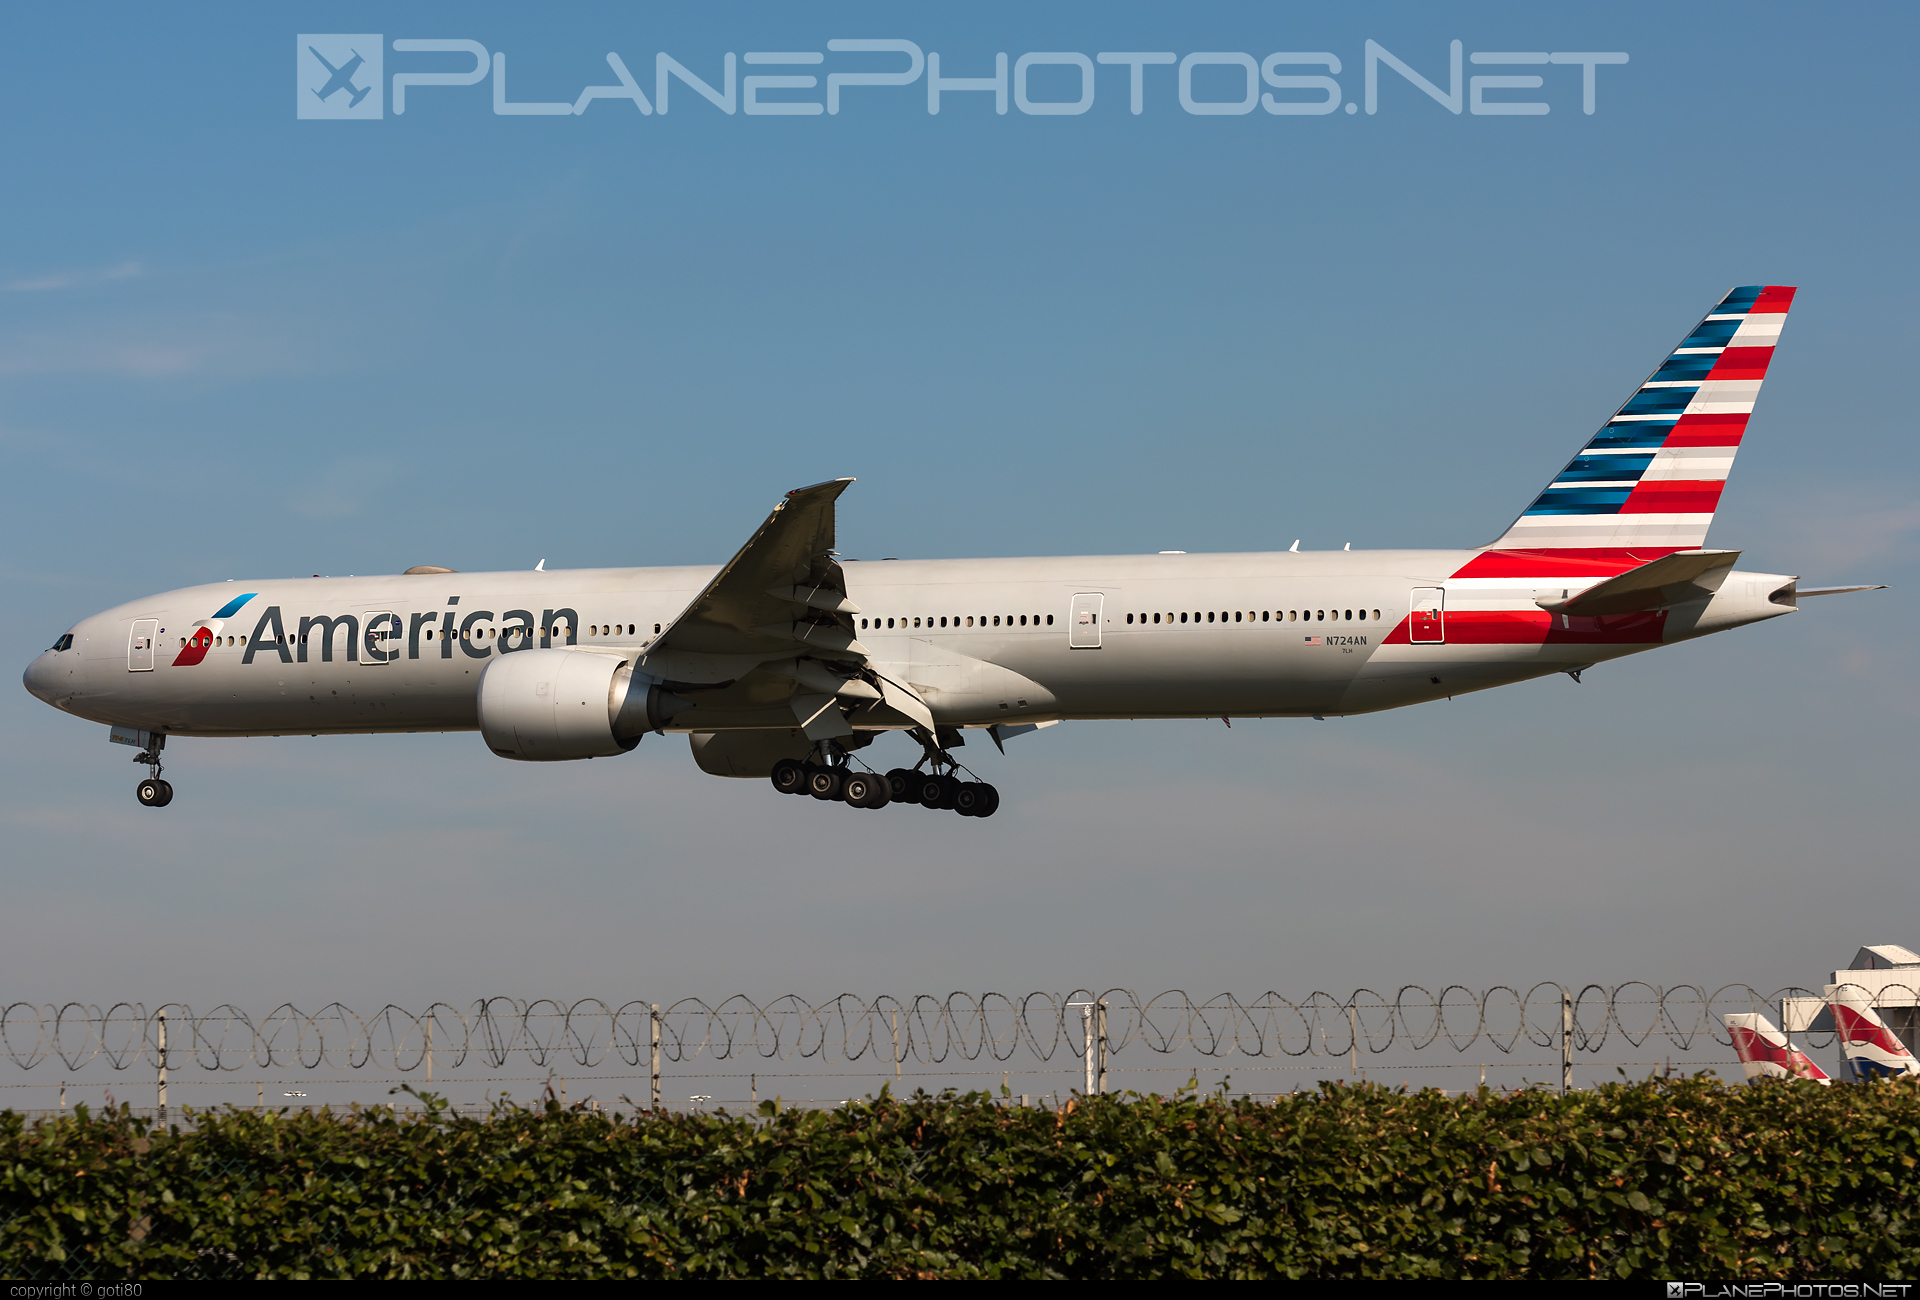 American Airlines Boeing 777-300ER - N724AN #americanairlines #b777 #b777er #boeing #boeing777 #tripleseven